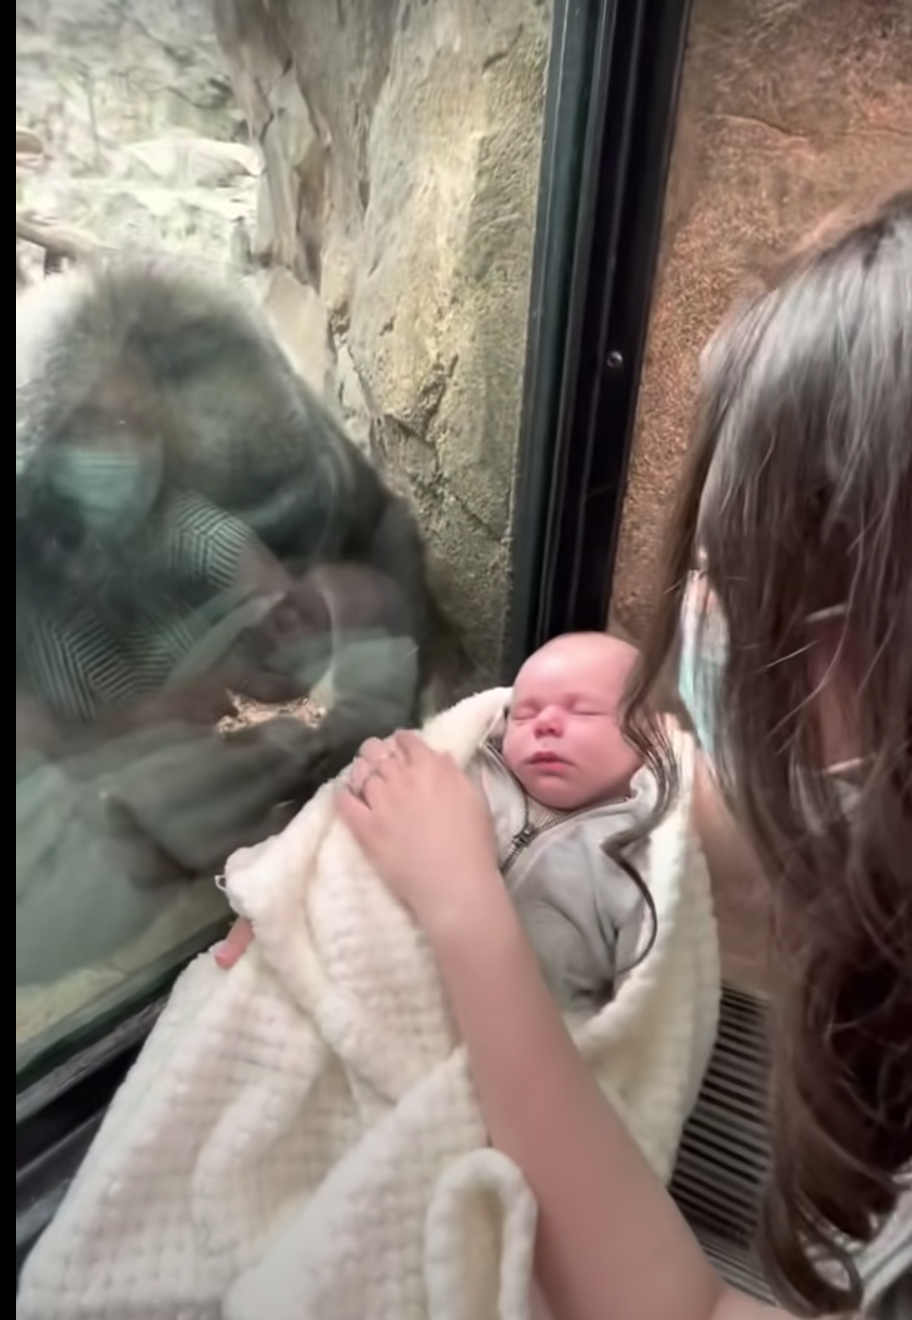 <p>Kiki, a gorilla at Franklin Zoo, tried to bond with a fellow mother and baby in a moving video</p> (YouTube/Michael Austin)